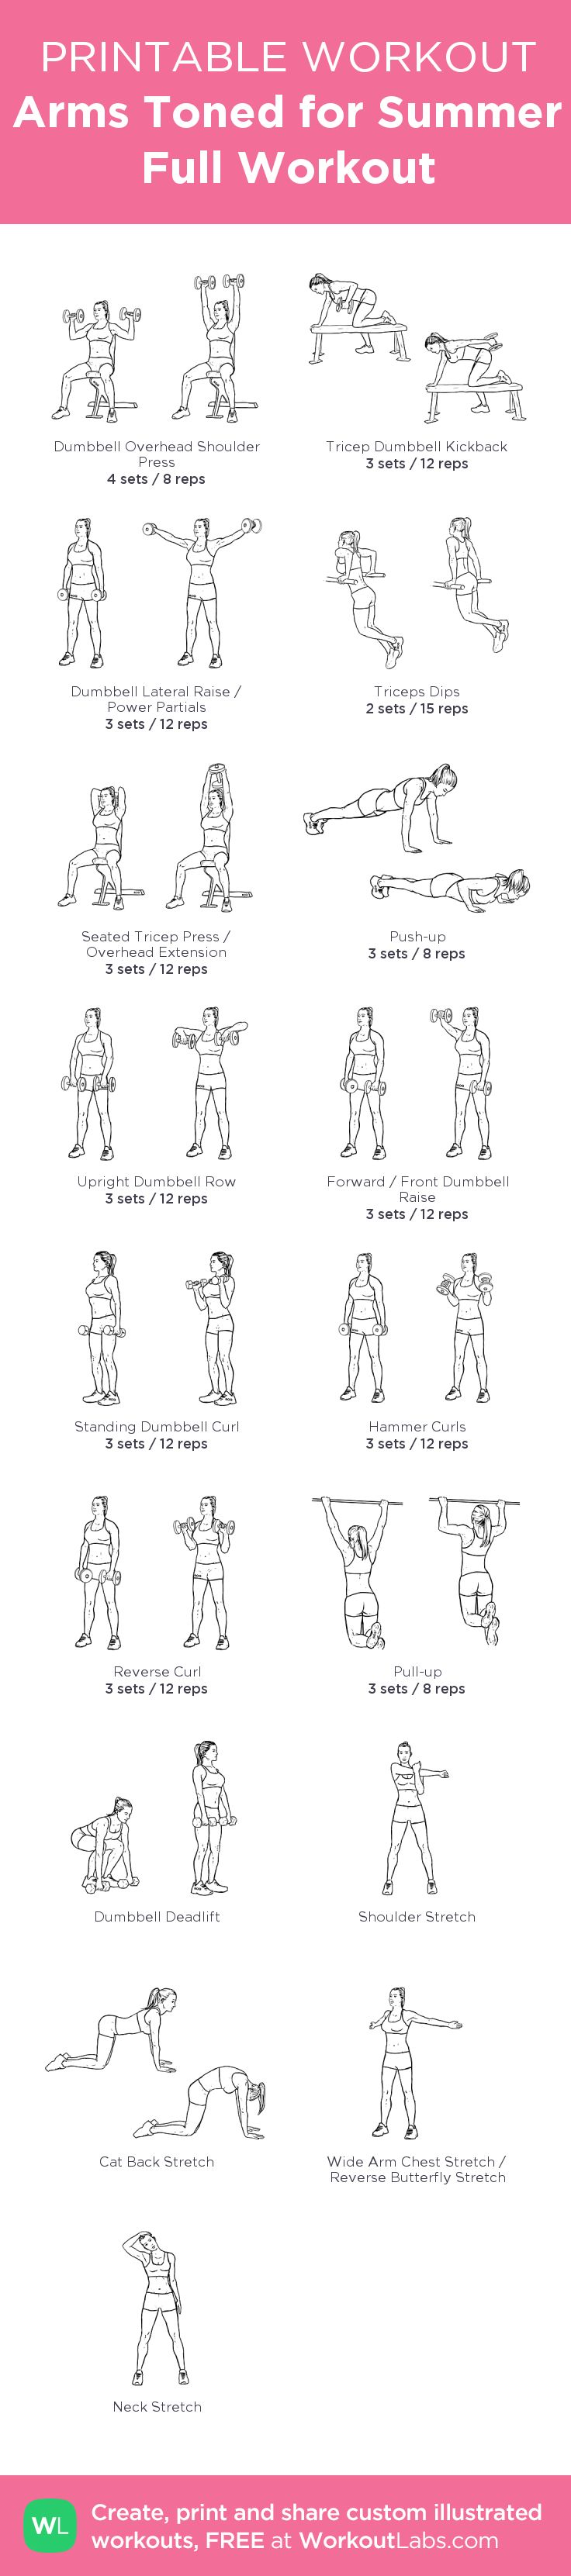 Arms Toned for Summer Full Workout – my custom workout created at WorkoutLabs.com • Click through to download as printable PDF! #customworkout